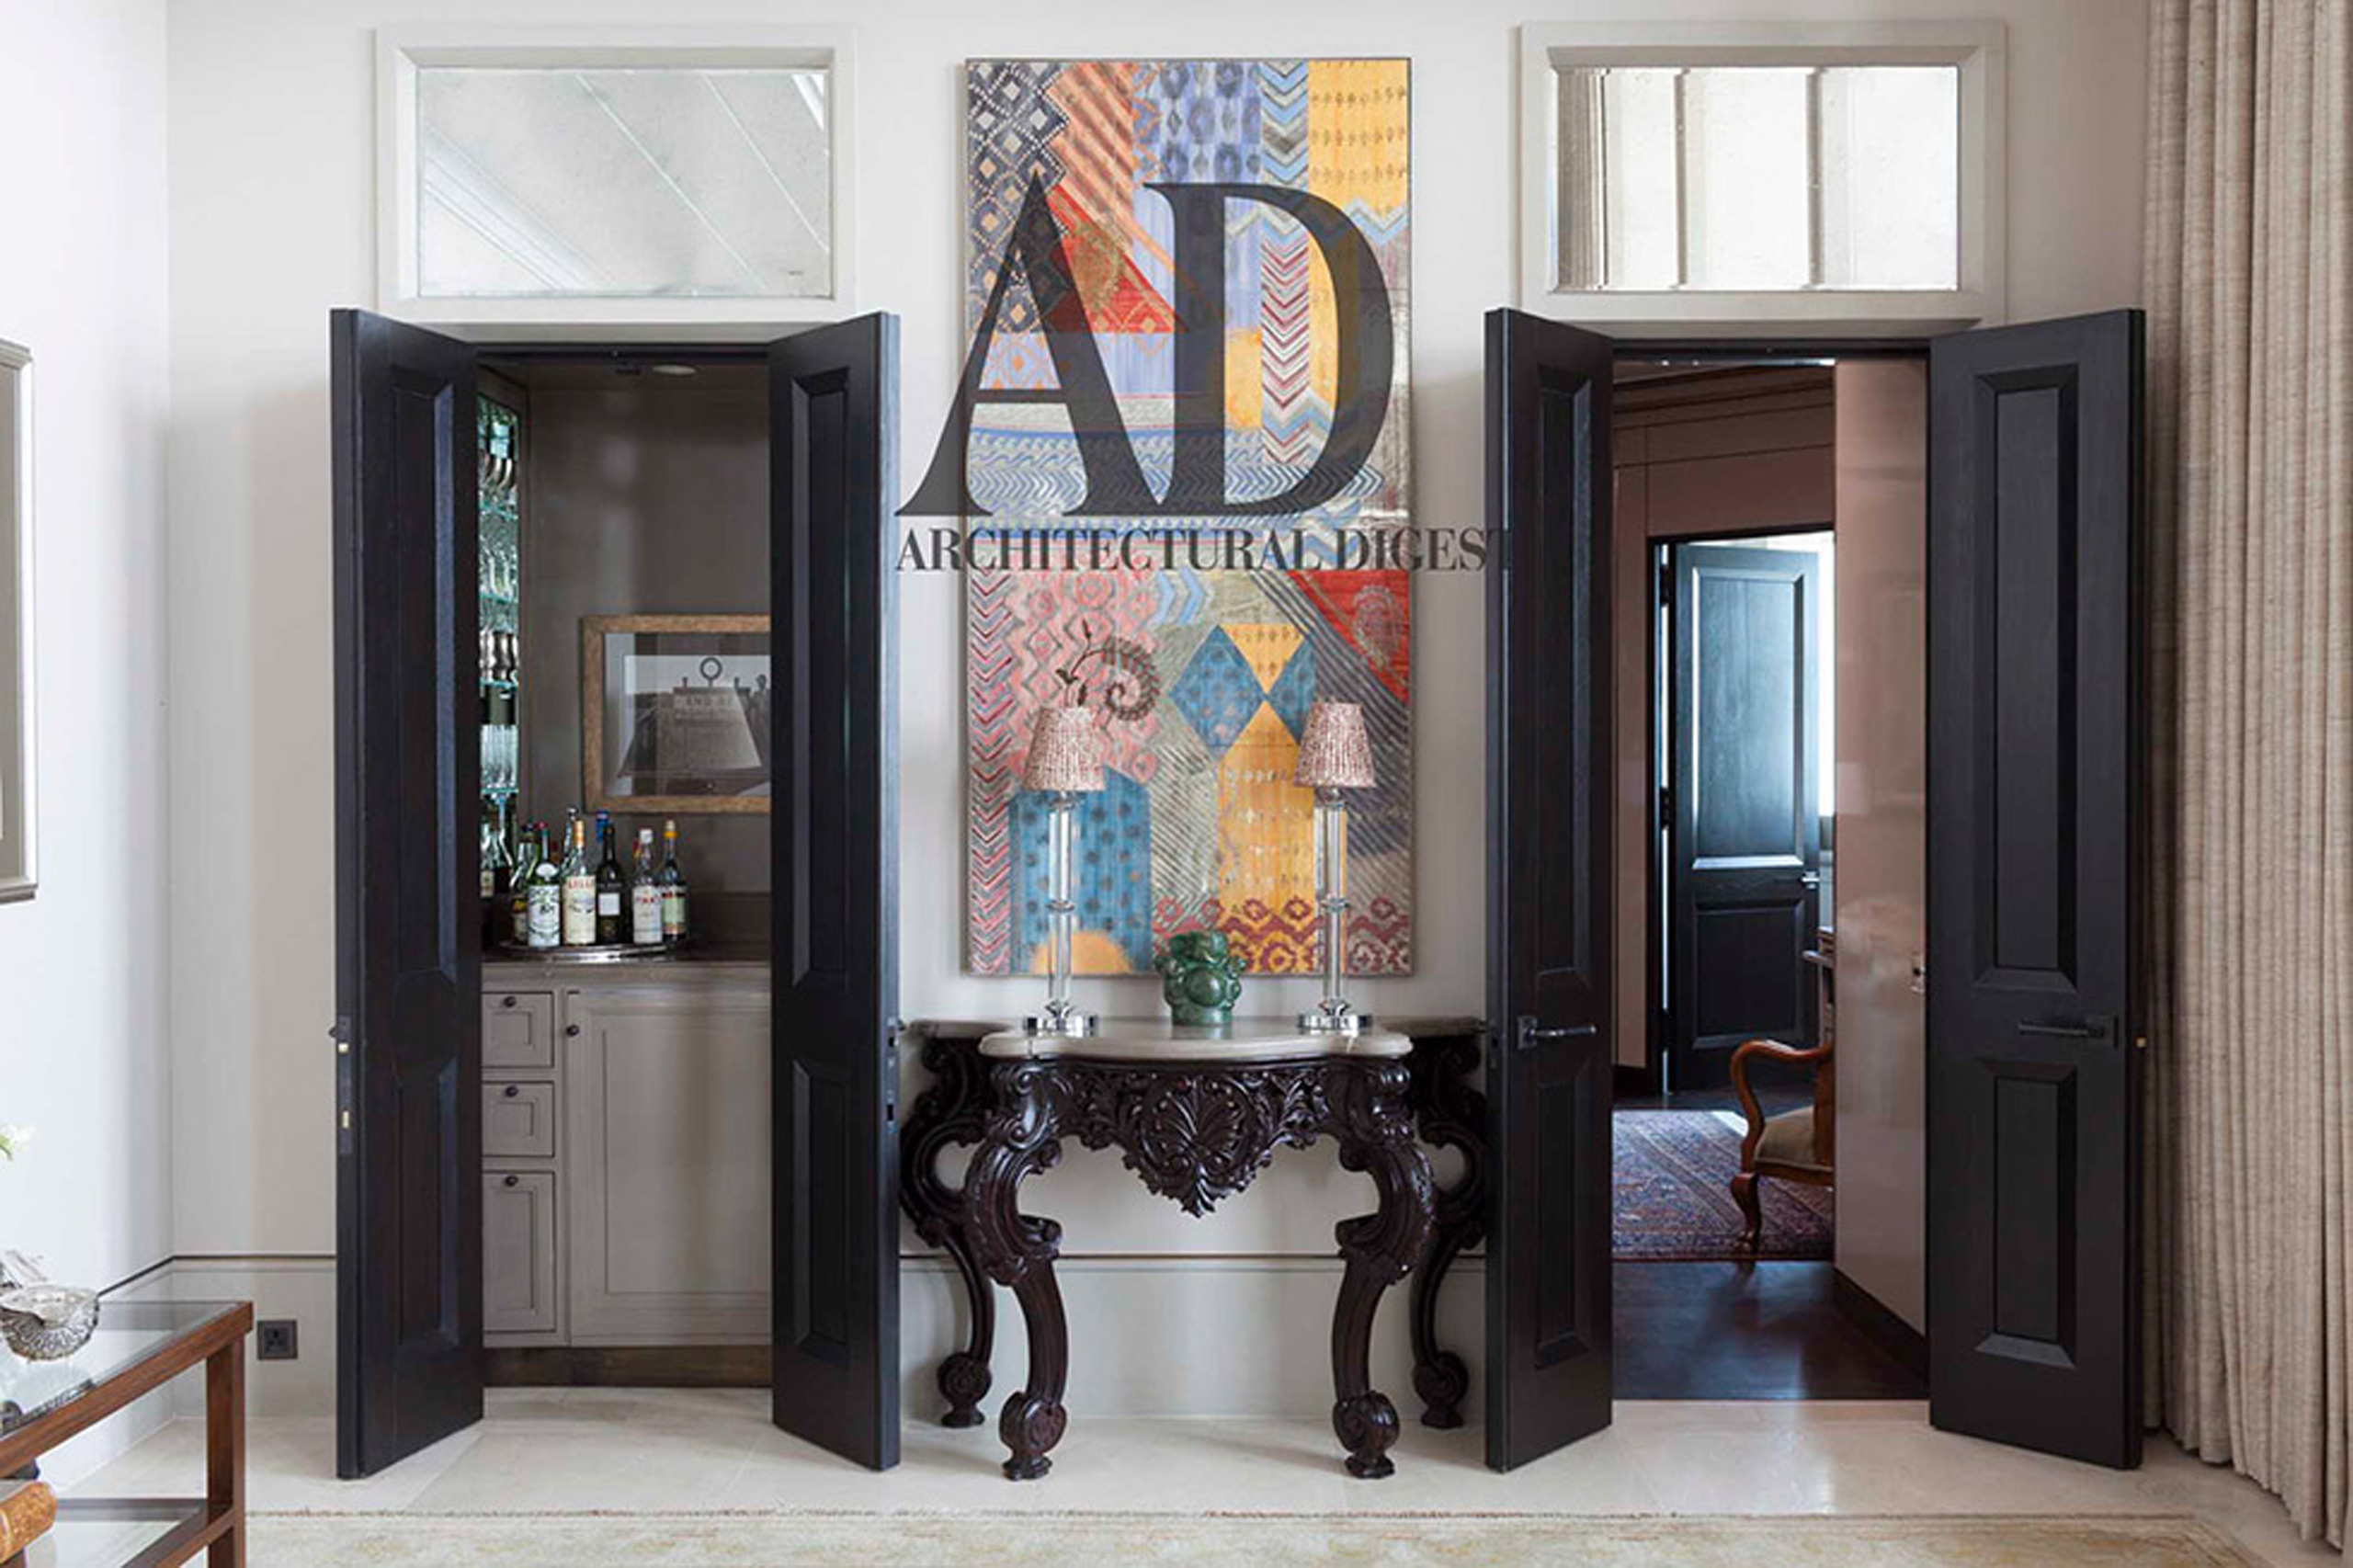 Architectural Digest - Apartment Interior